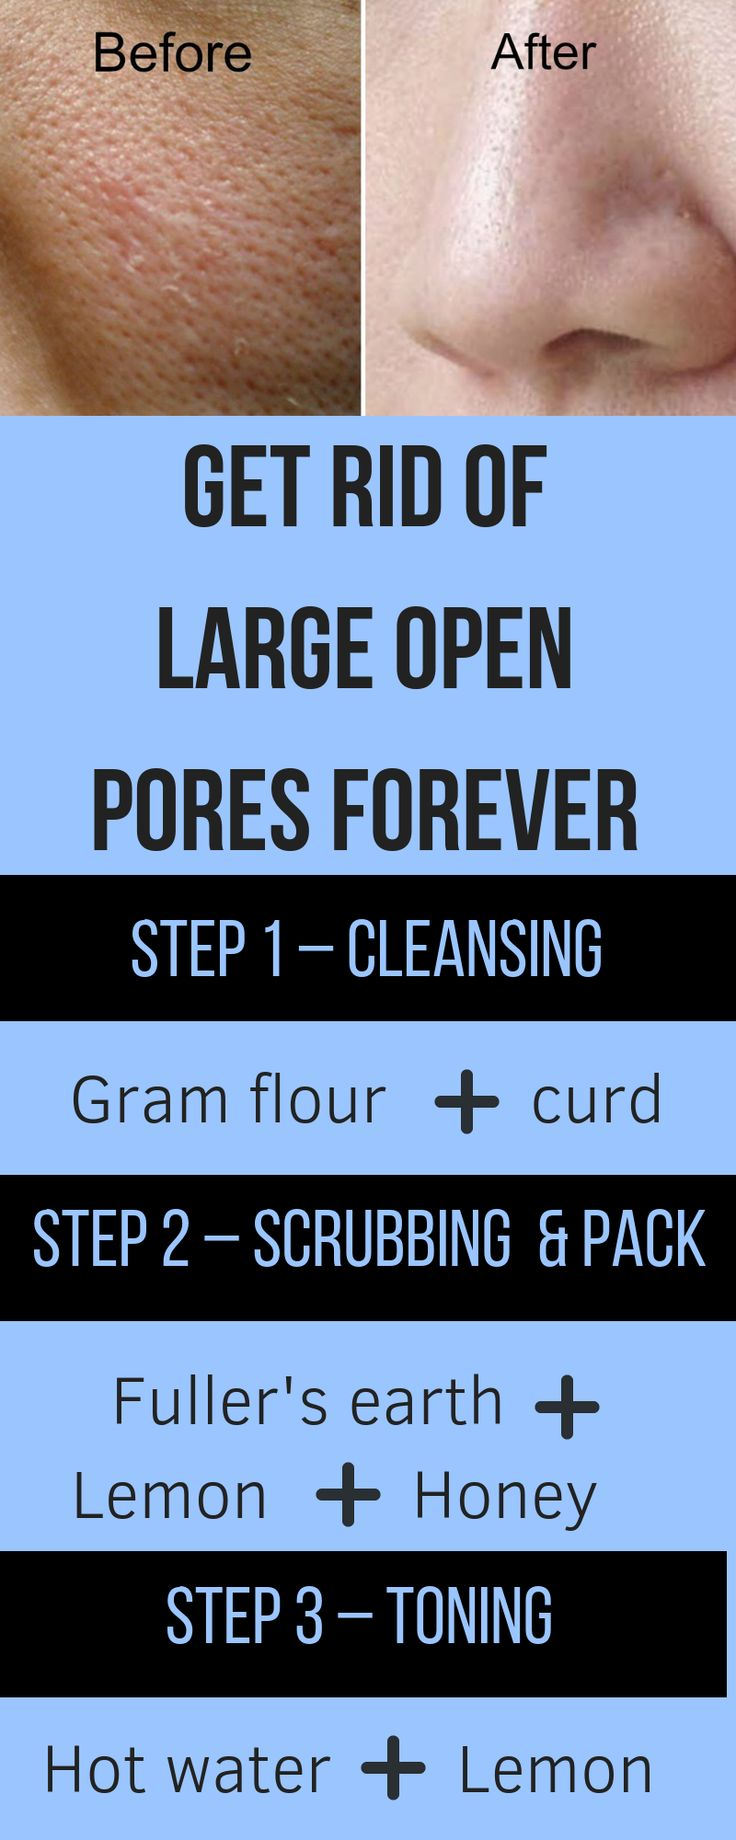 Get rid of large open pores forever